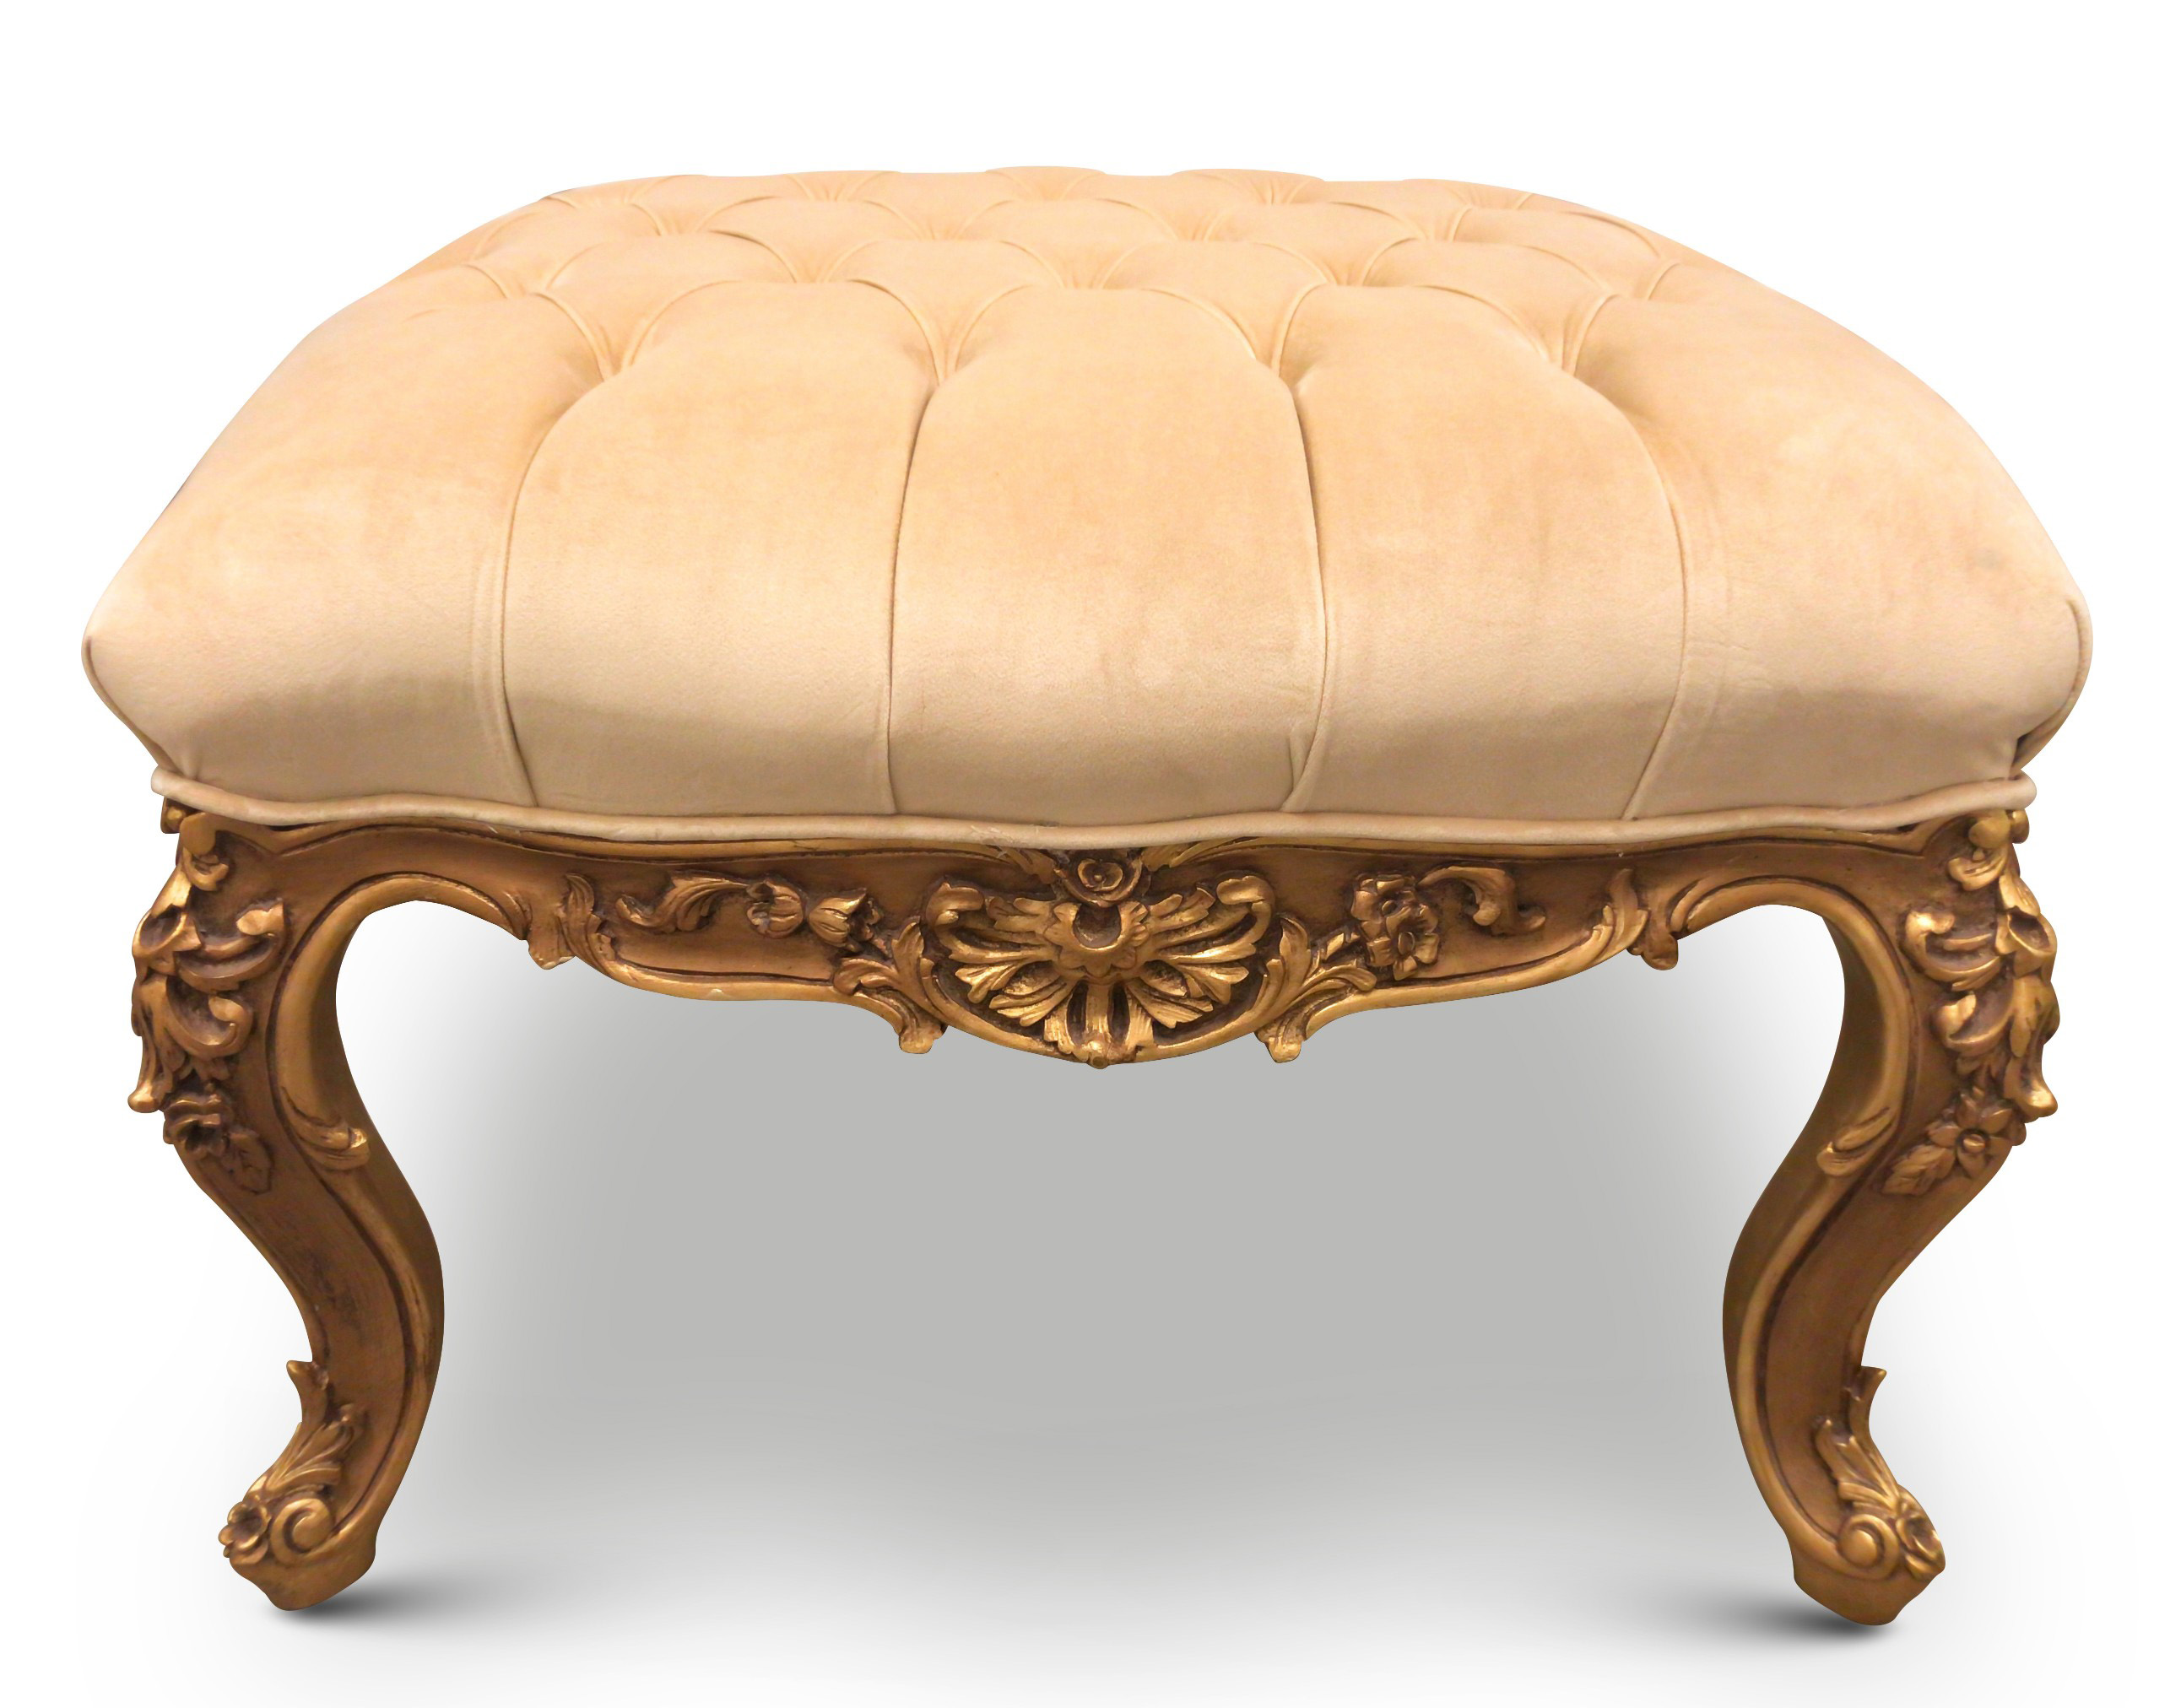 Amazing Circe French Style Gold Leaf Tufted Cream Biege Velvet Ottoman Pdpeps Interior Chair Design Pdpepsorg